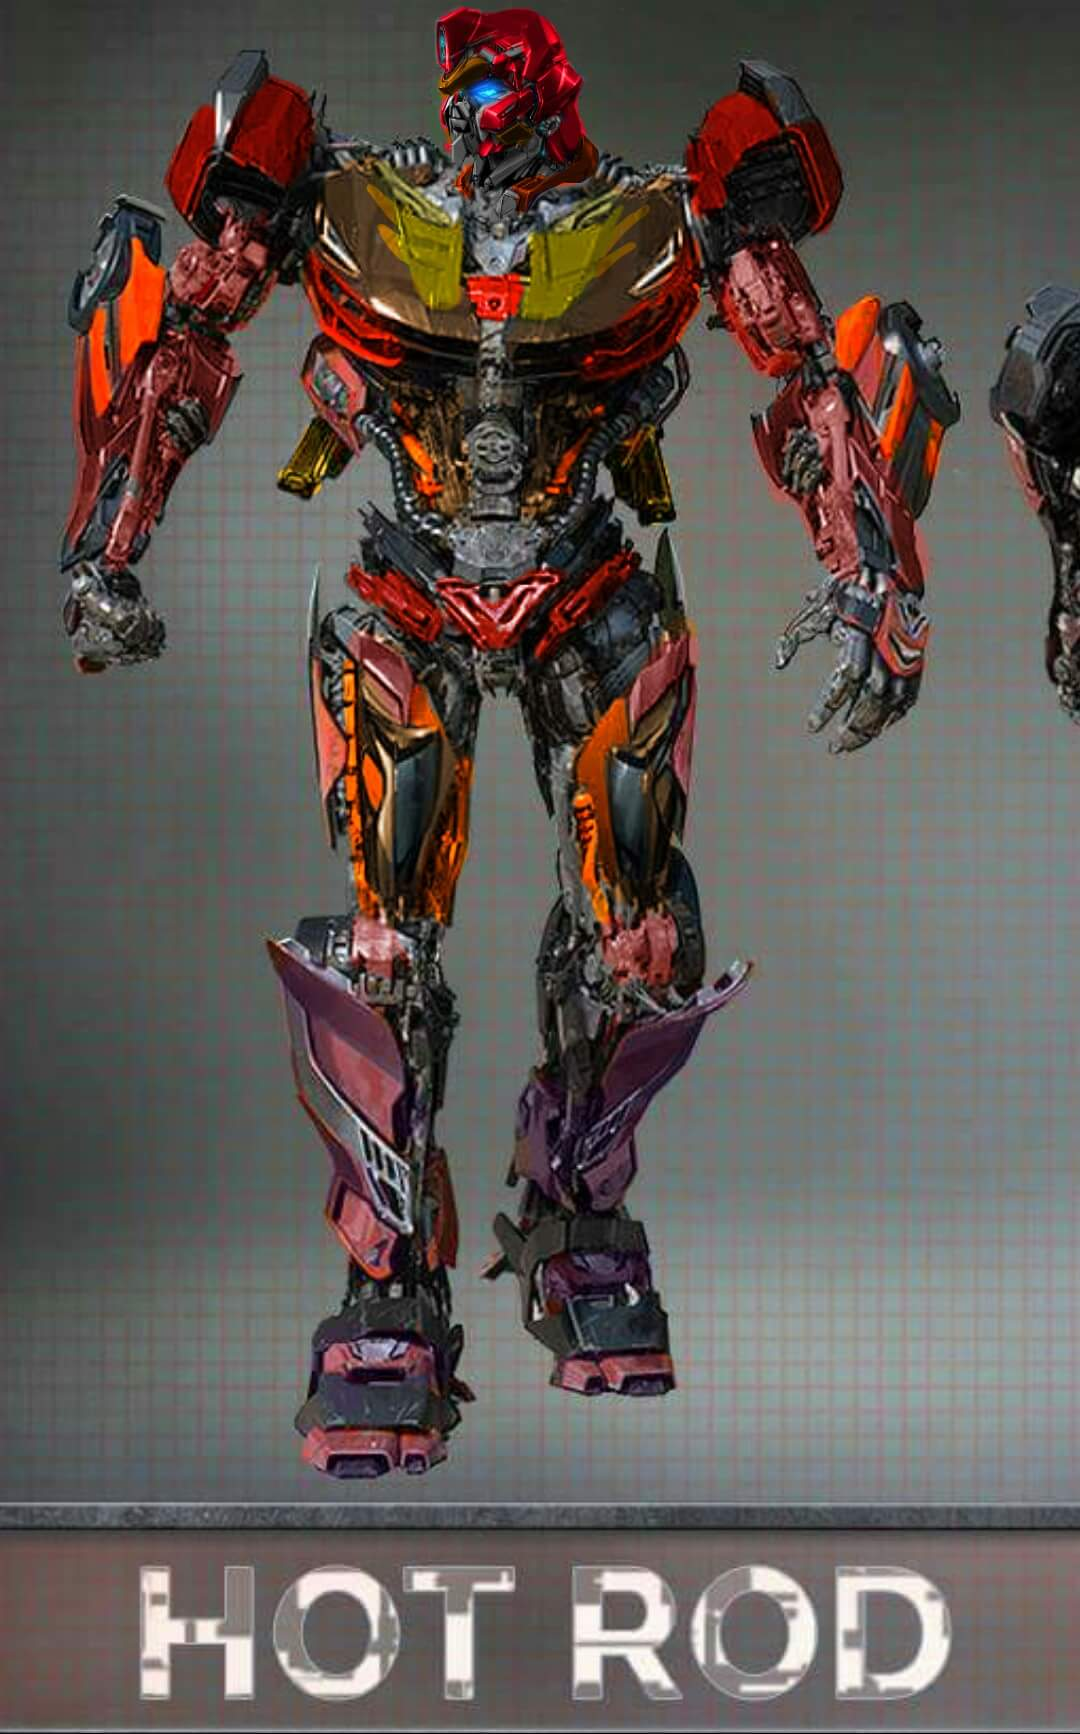 Transformers 5 Hot Rod Revealed Page 9 Tfw2005 The